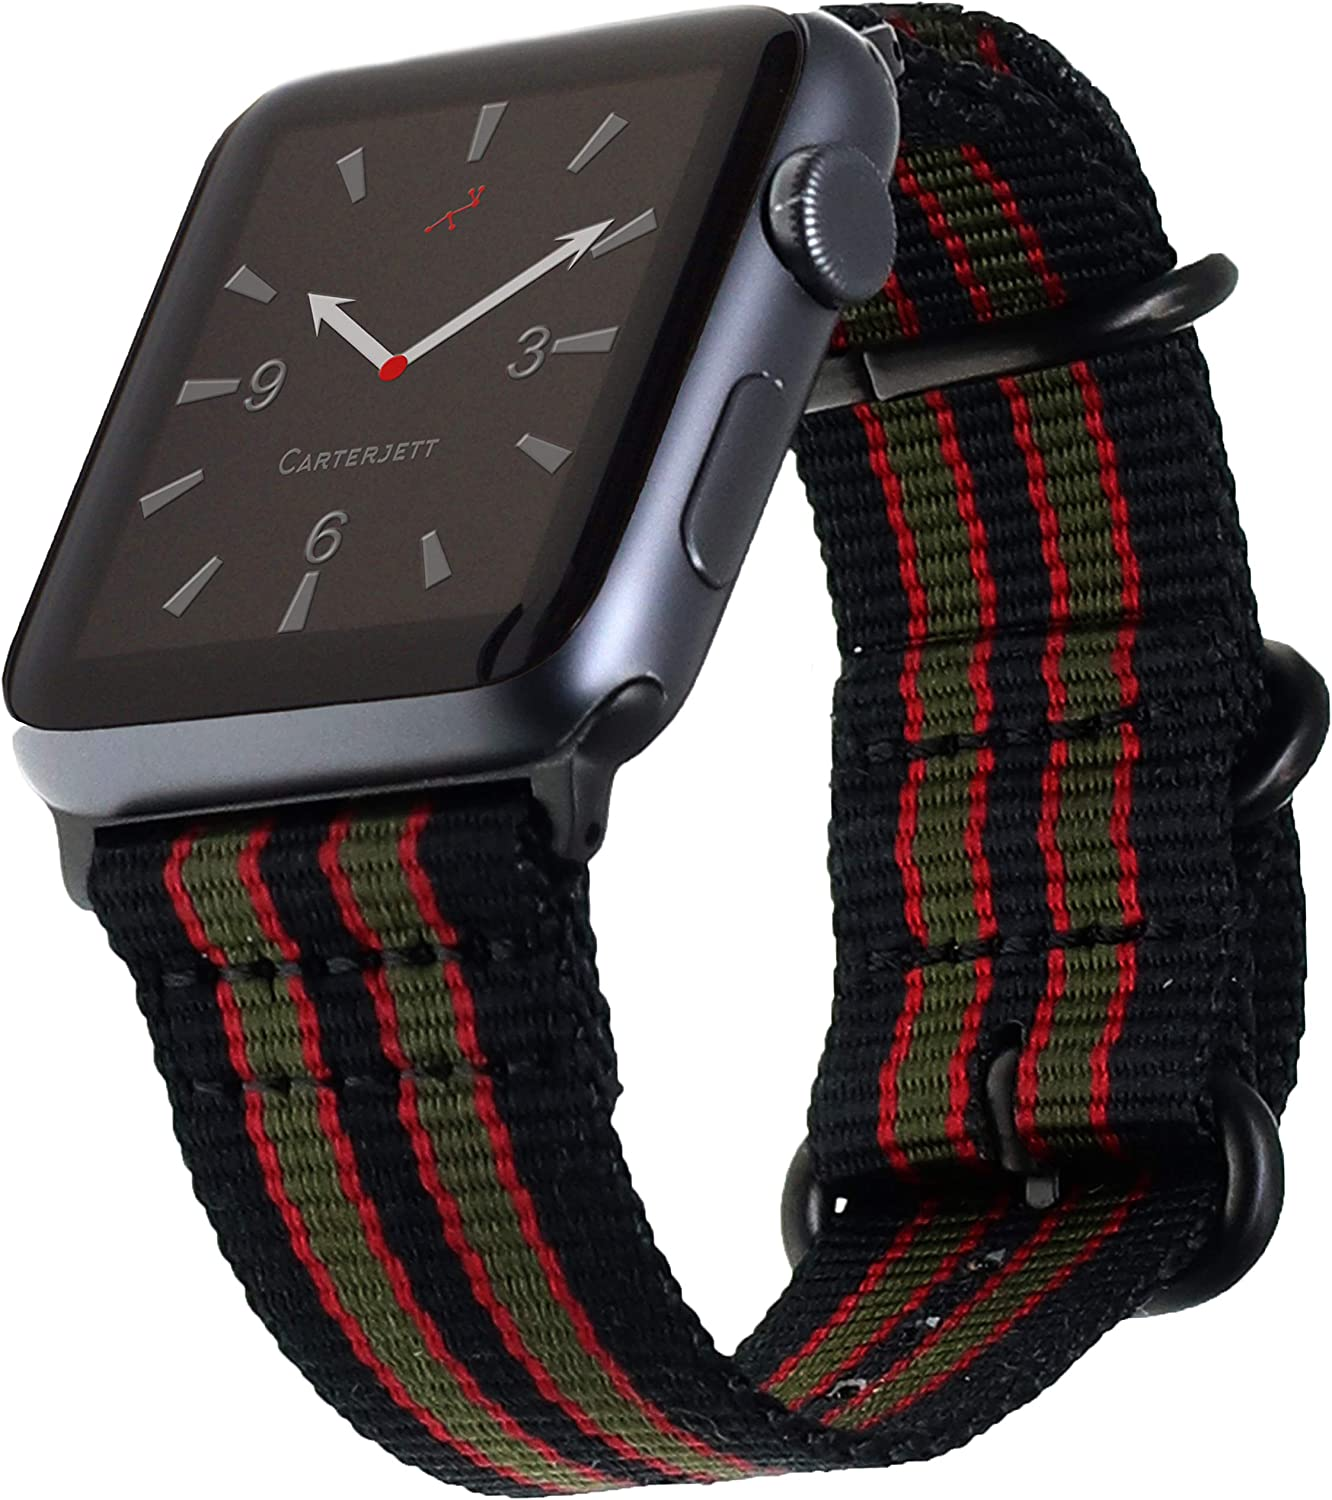 """Carterjett Extra Large Nylon Compatible with Apple Watch Band 42mm 44mm XL James Bond Replacement iWatch Military Style Strap 8-10.5"""" Wrists X-Long for Series 5 4 3 2 1 Sport (42 44 XXL Vintage Bond)"""